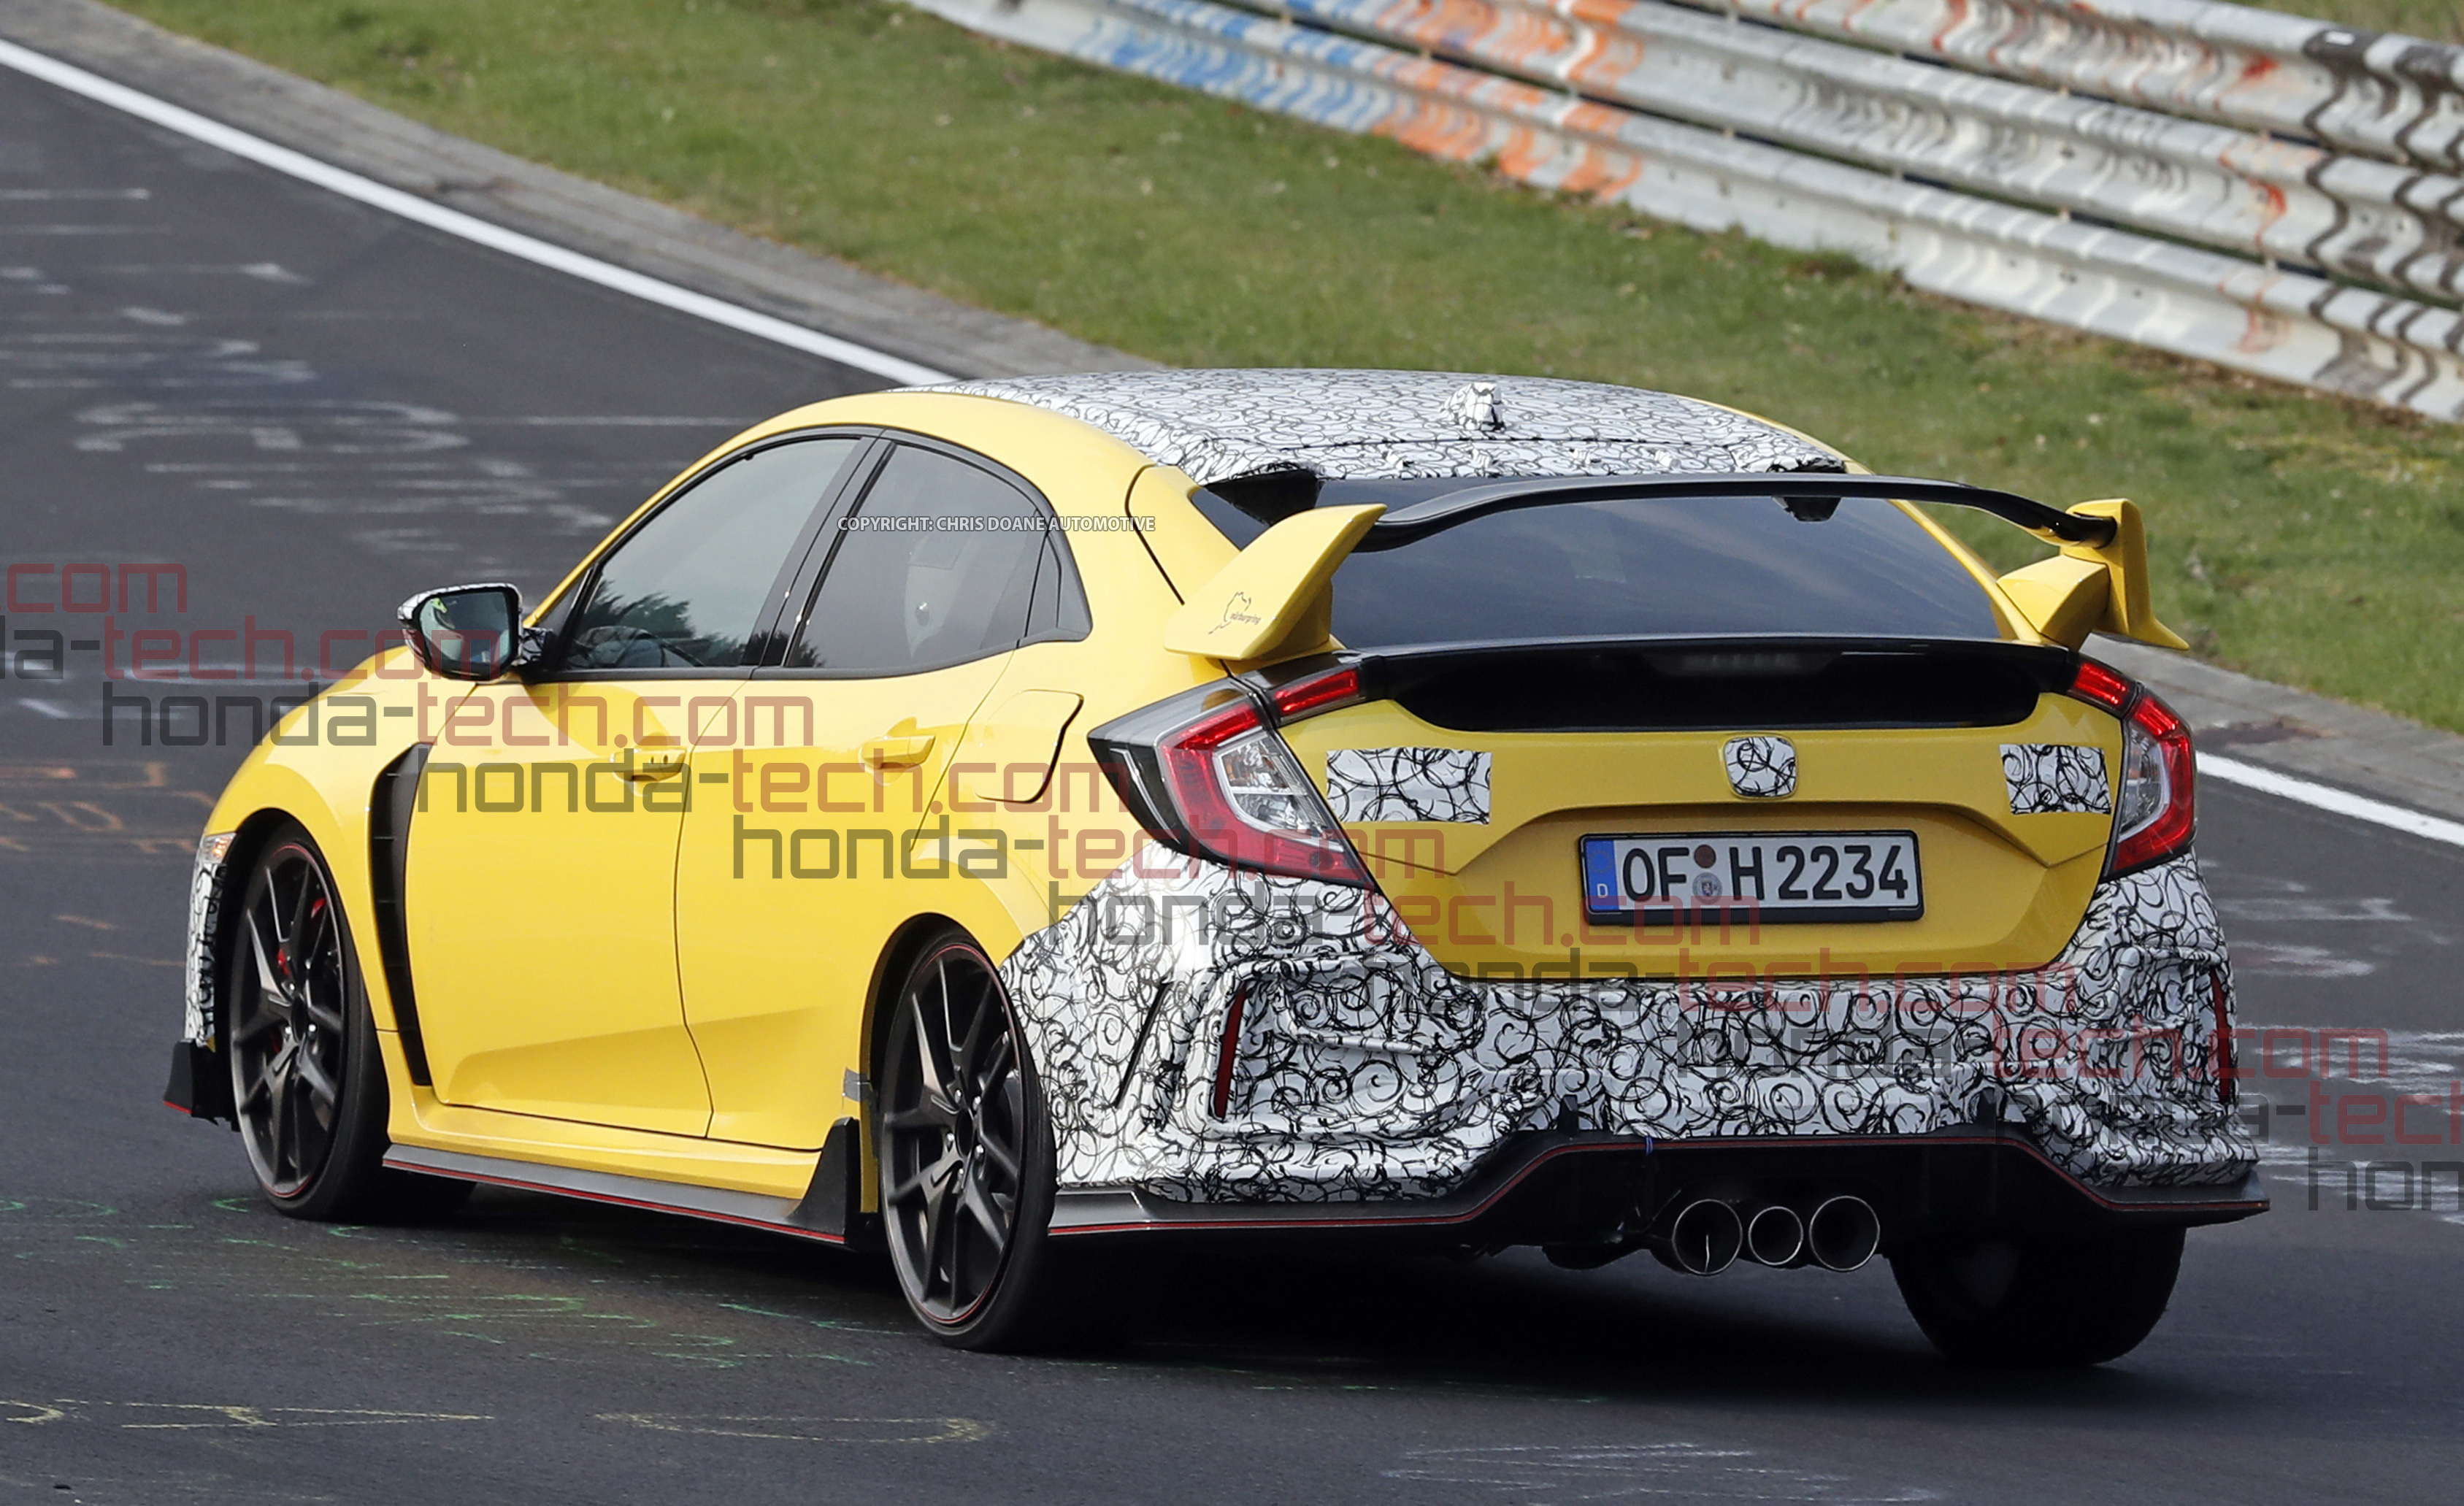 2020 Honda Civic Type R Refresh News Spy Shots Exclusive